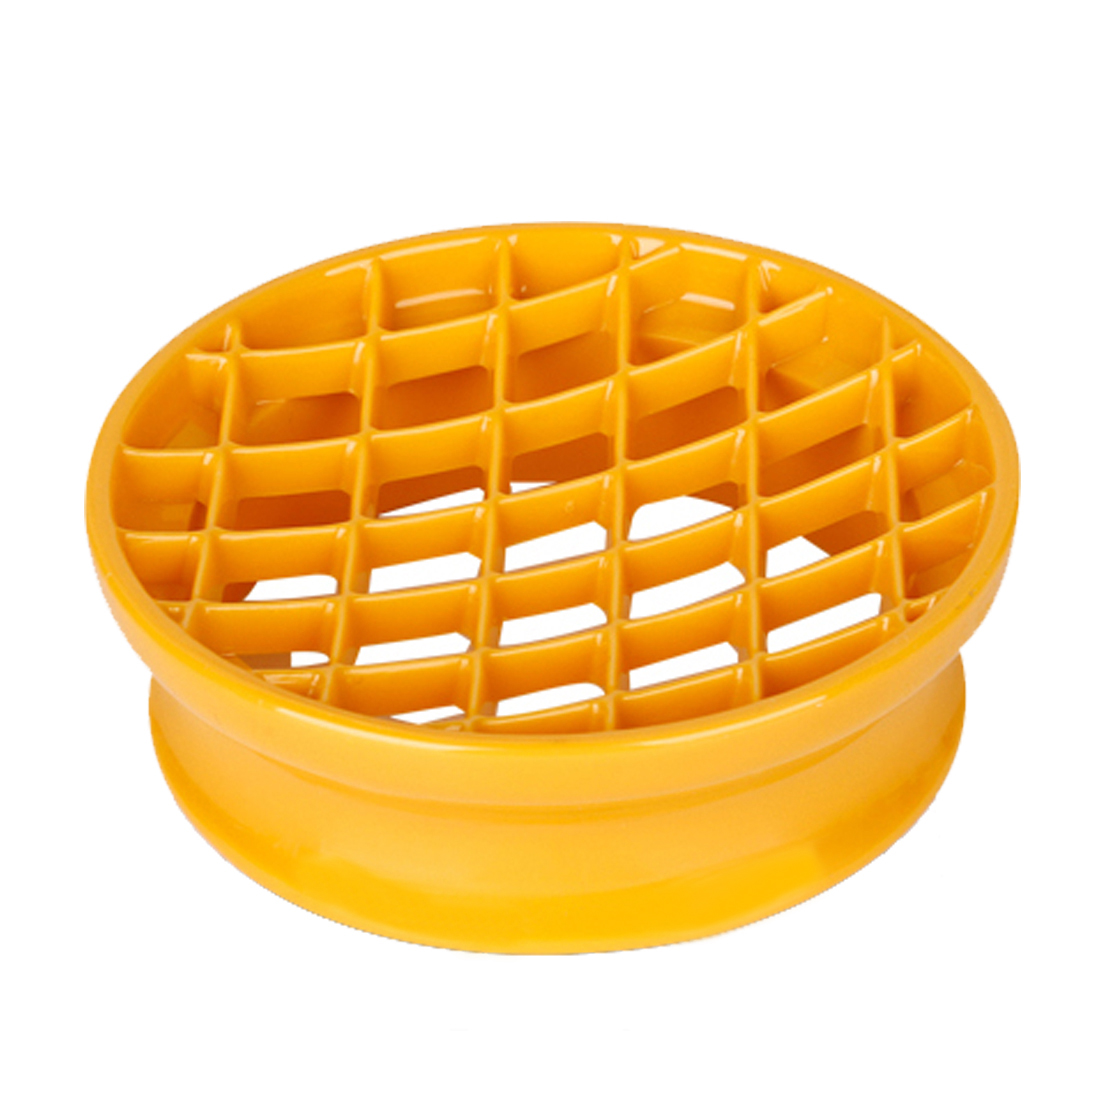 Home Kitchen Bakeware DIY Tool Pineapple Bread Cake Decorating Mould Yellow